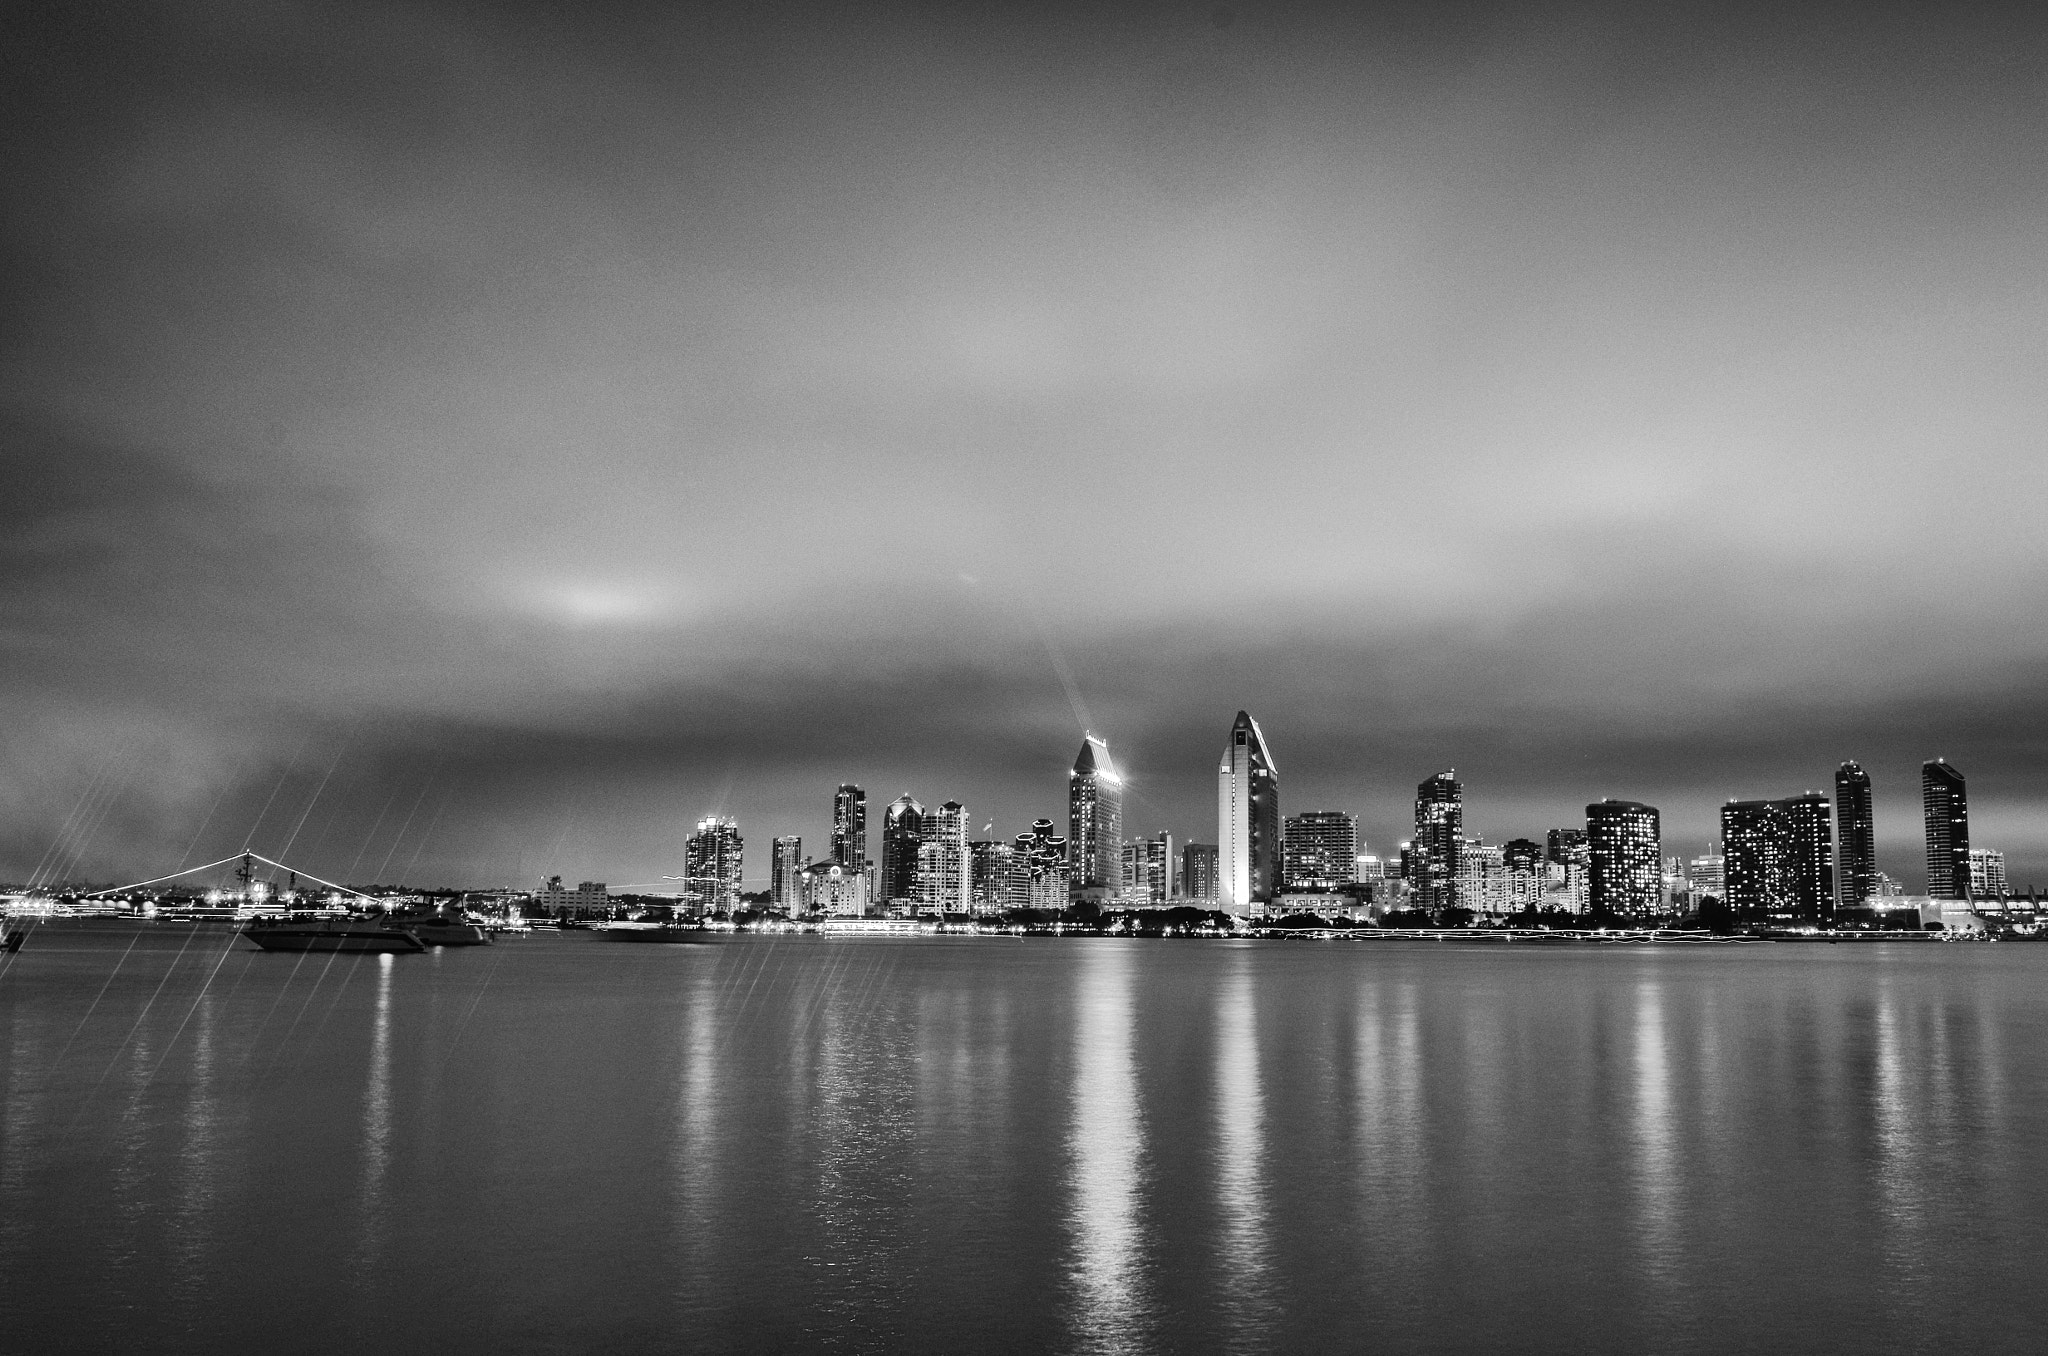 Photograph Monochrome Skyline by Andy Robinson on 500px